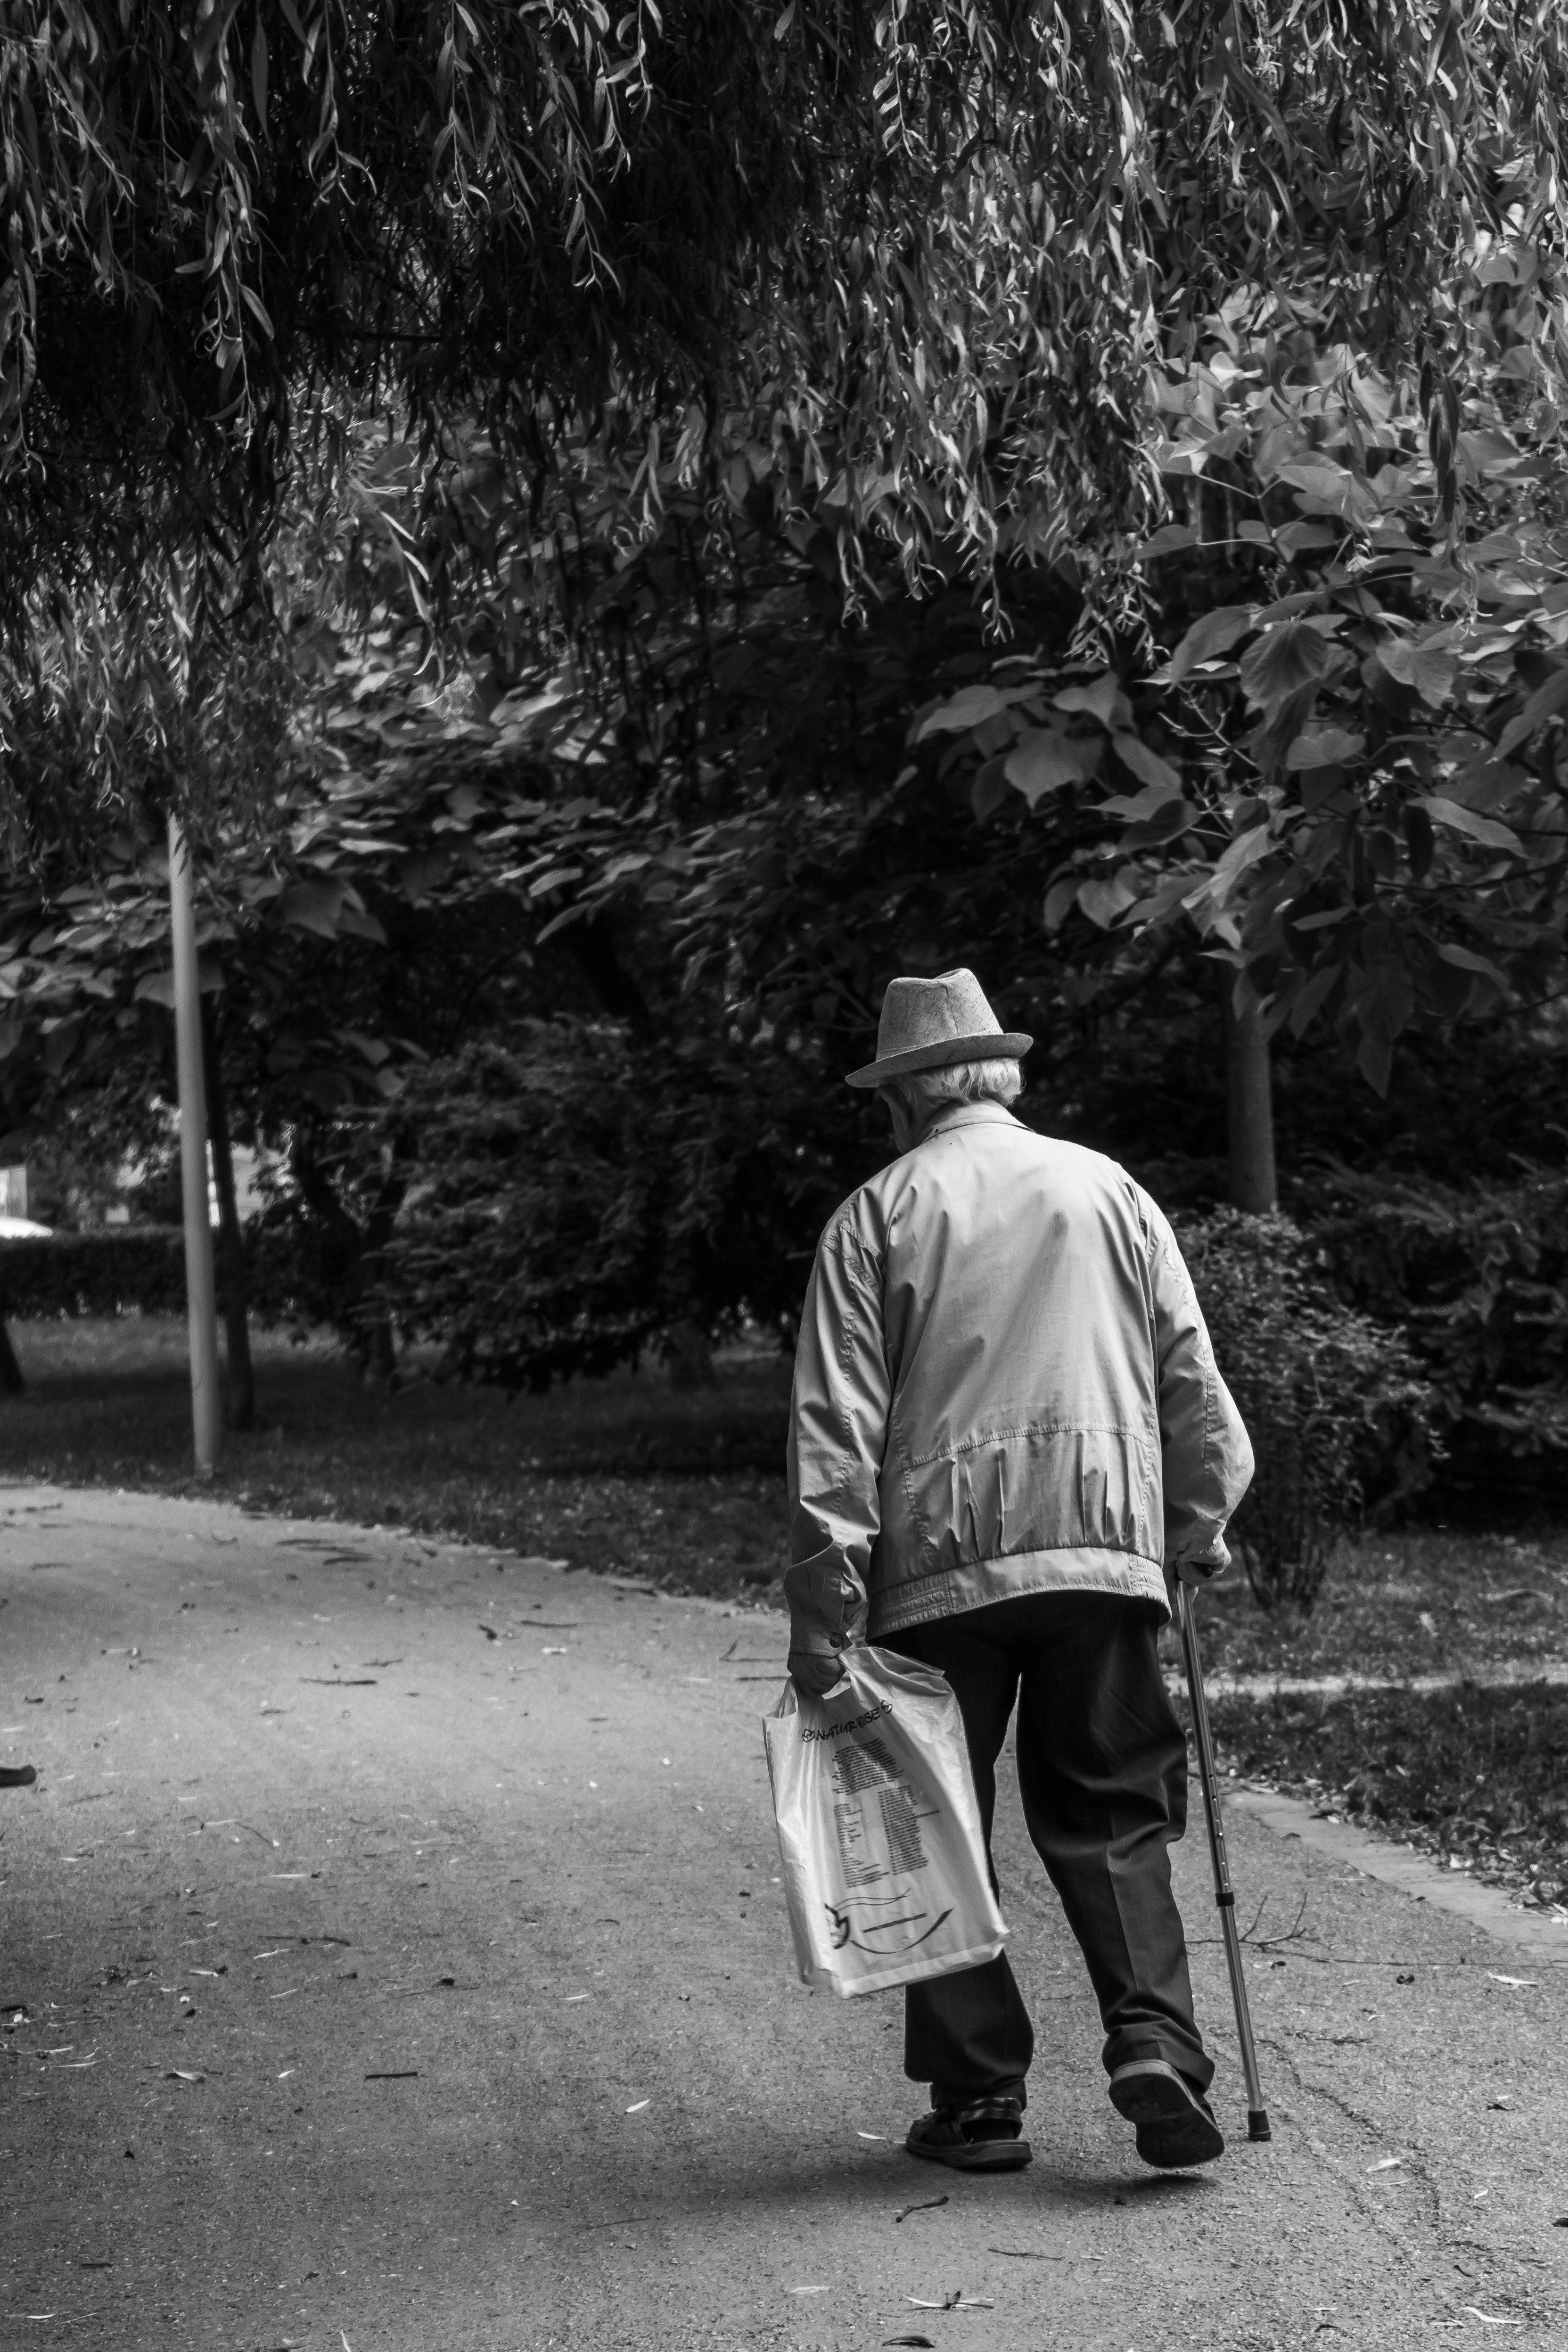 An old man walking alone | Source: Pexels.com